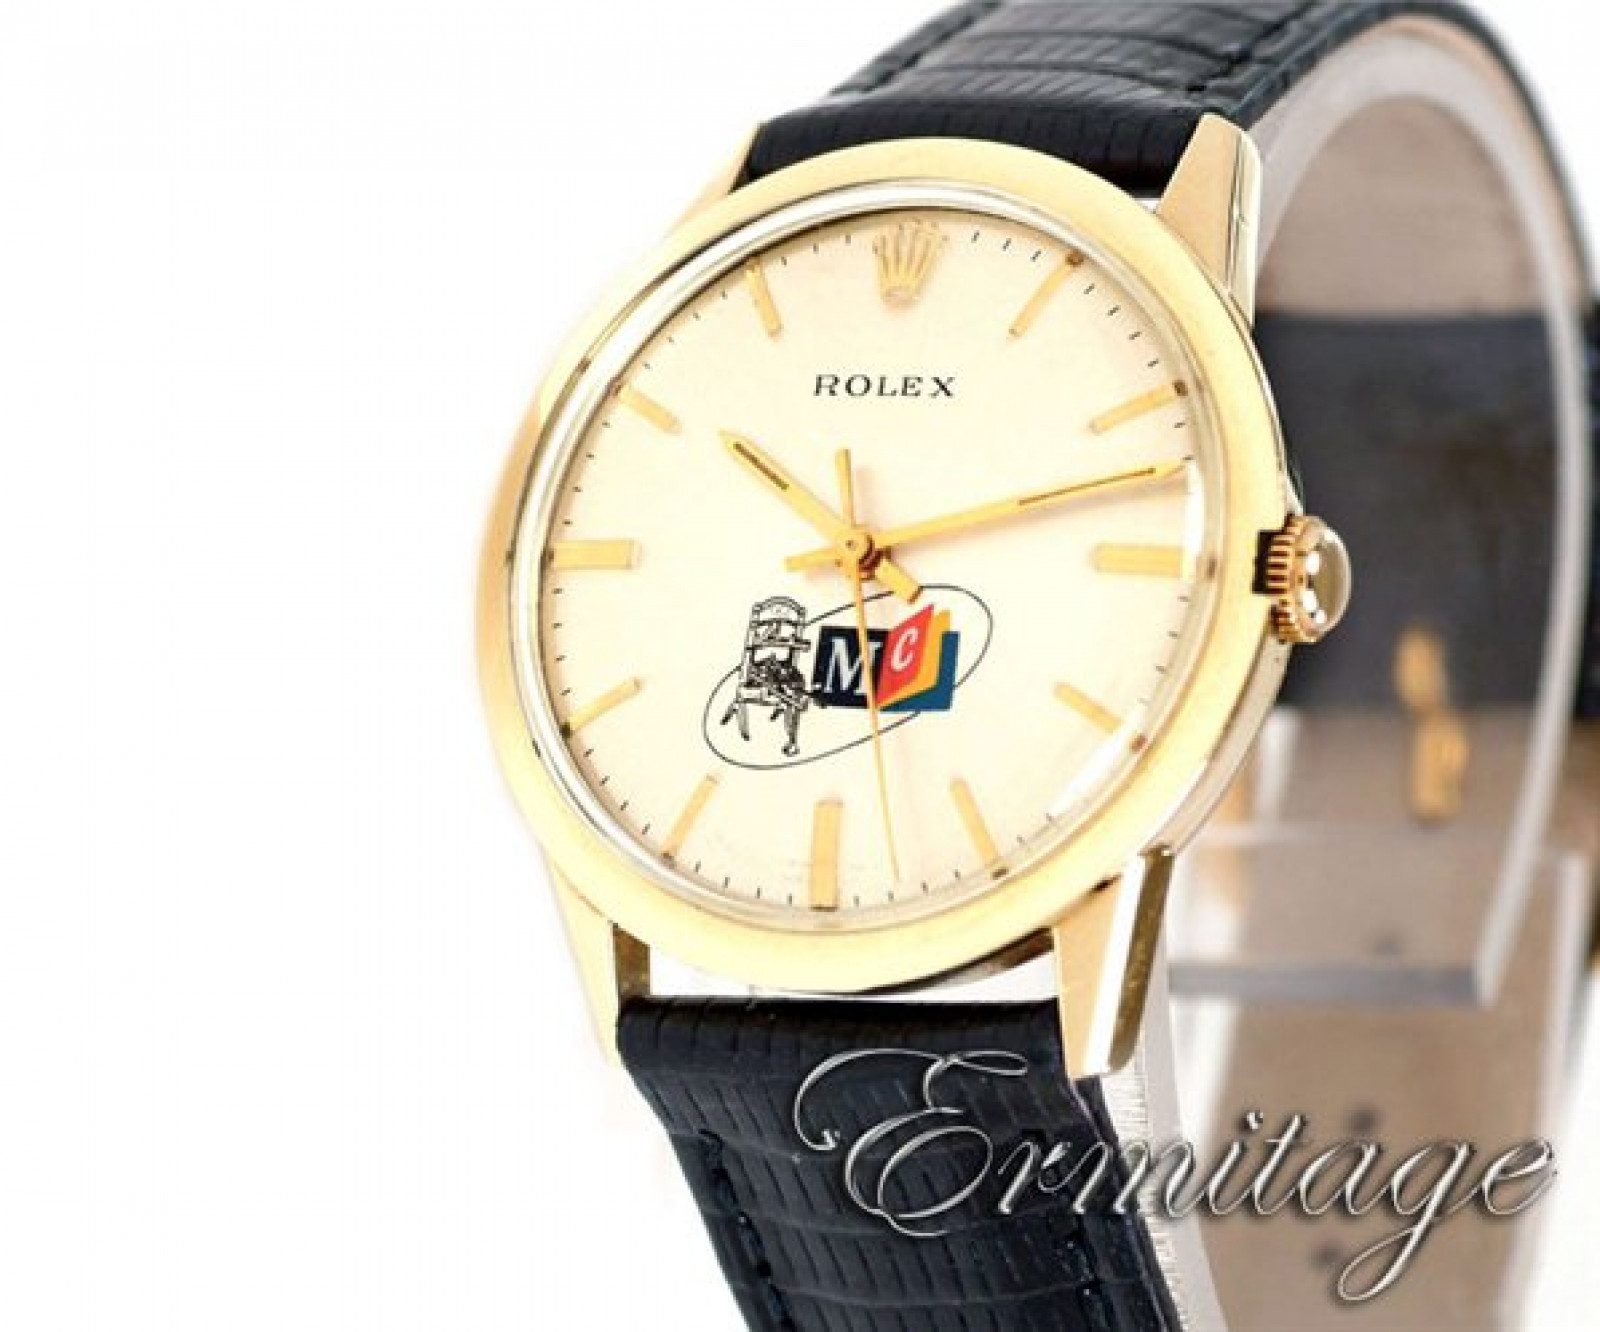 Rolex Oyster Perpetual Date 1520 Gold